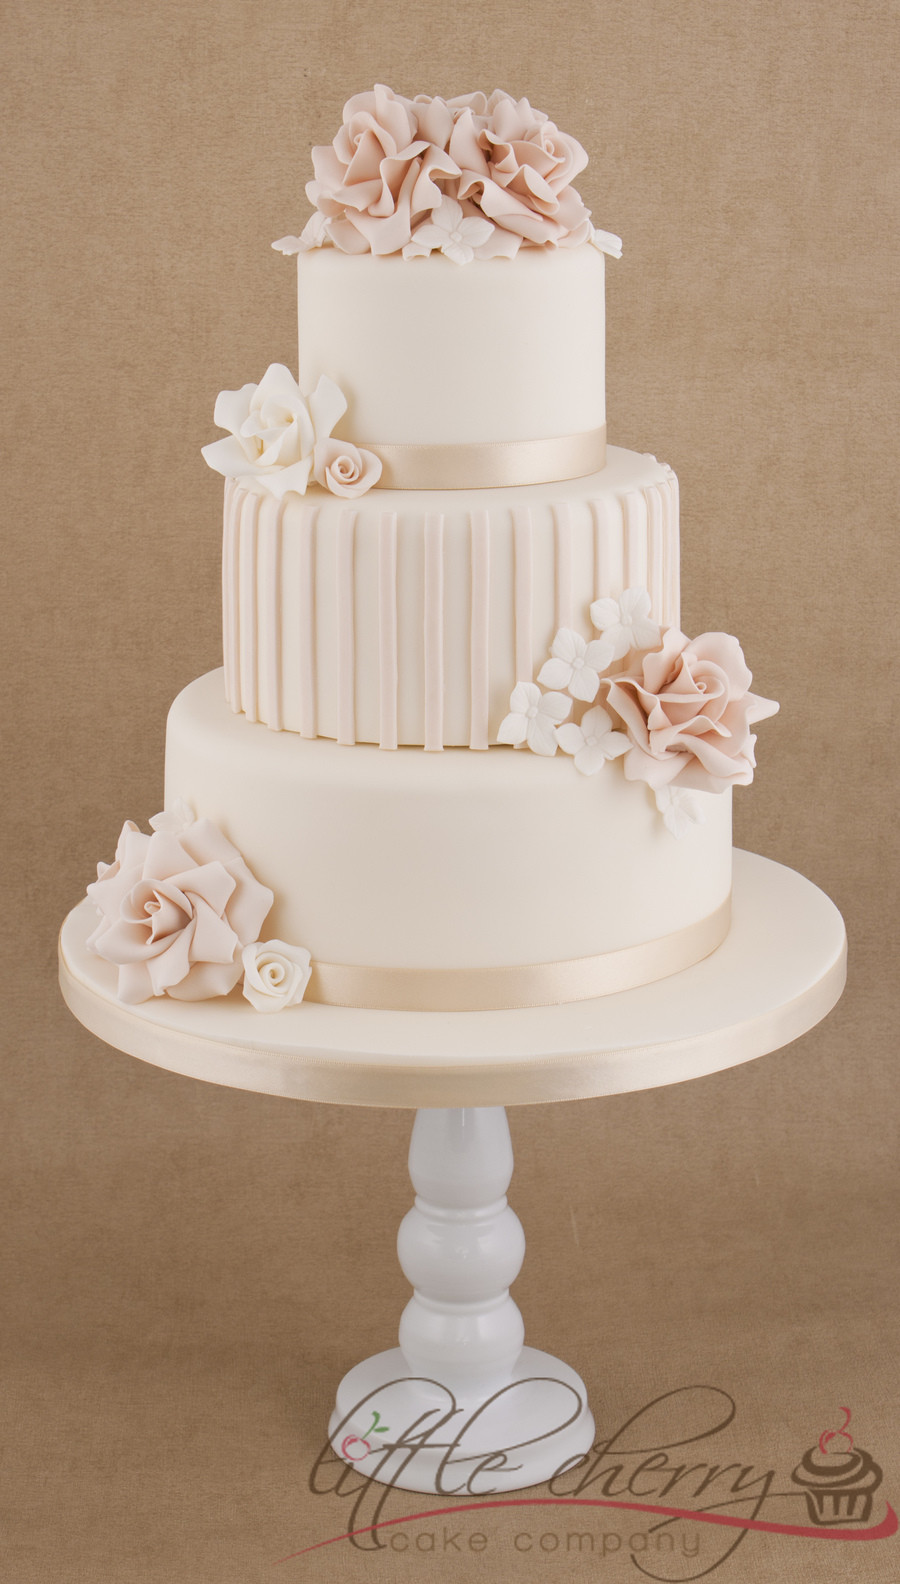 3 Tier Wedding Cakes 20 Best Roses and Stripes 3 Tier Wedding Cake Cakecentral